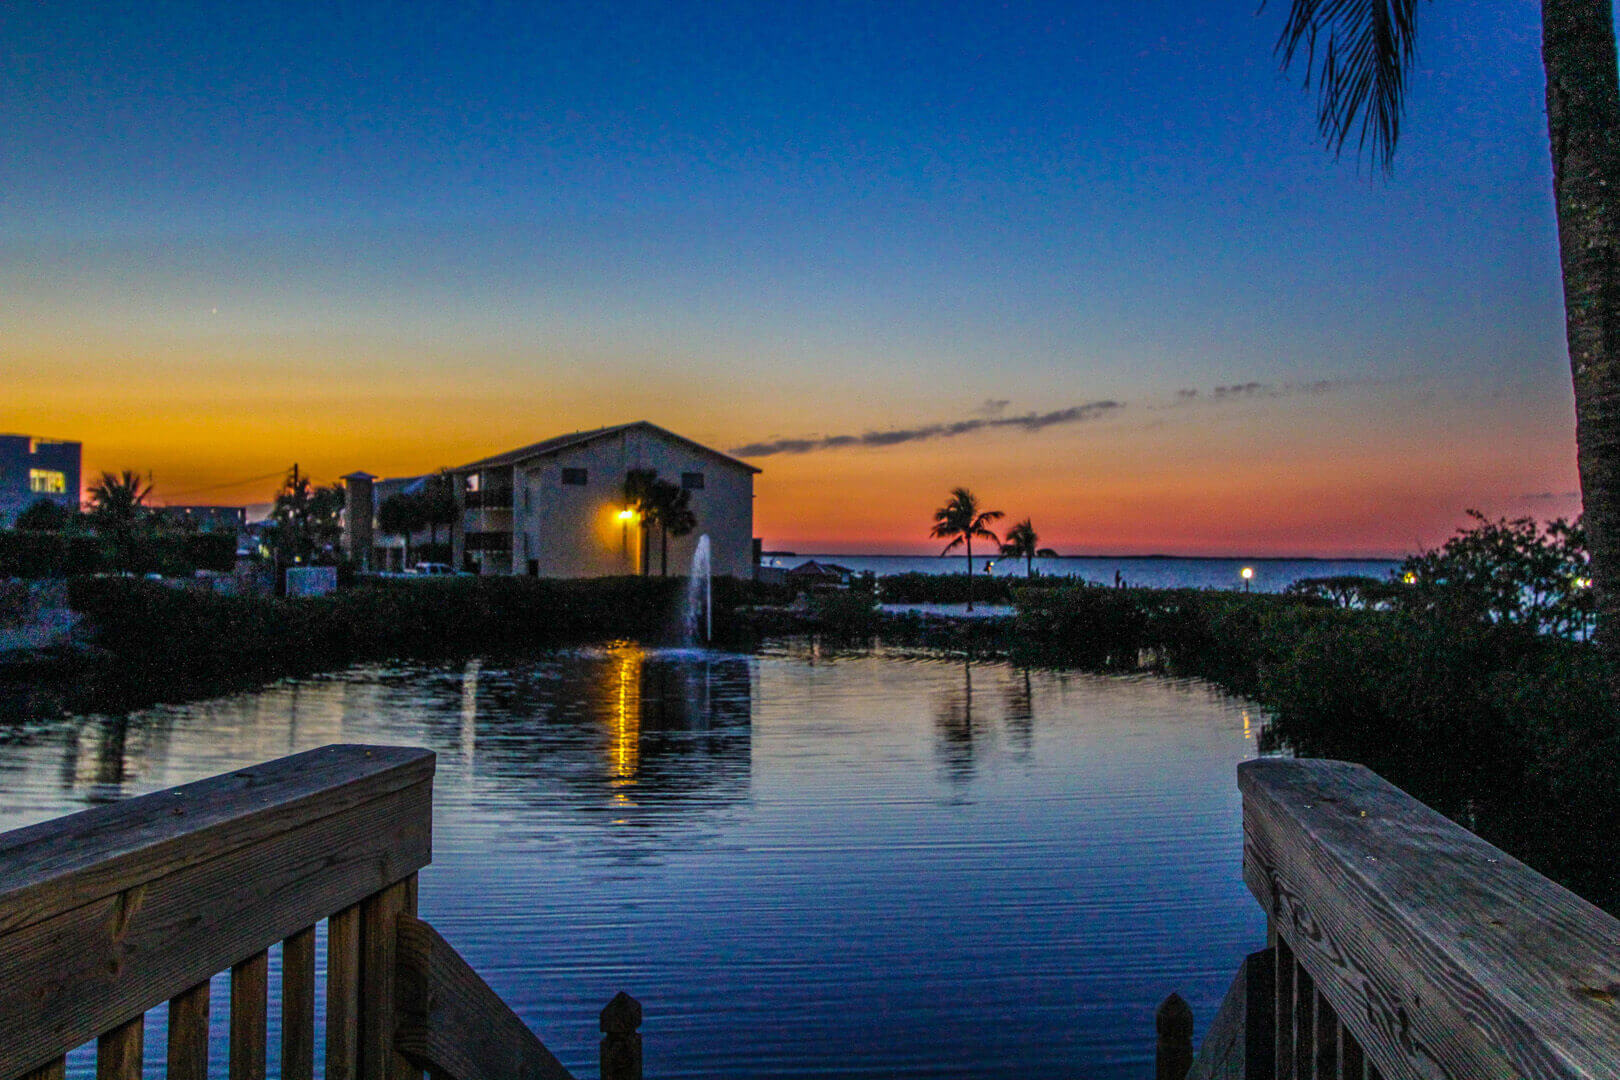 A lovely sunset view from VRI's Florida Bay Club in Florida.